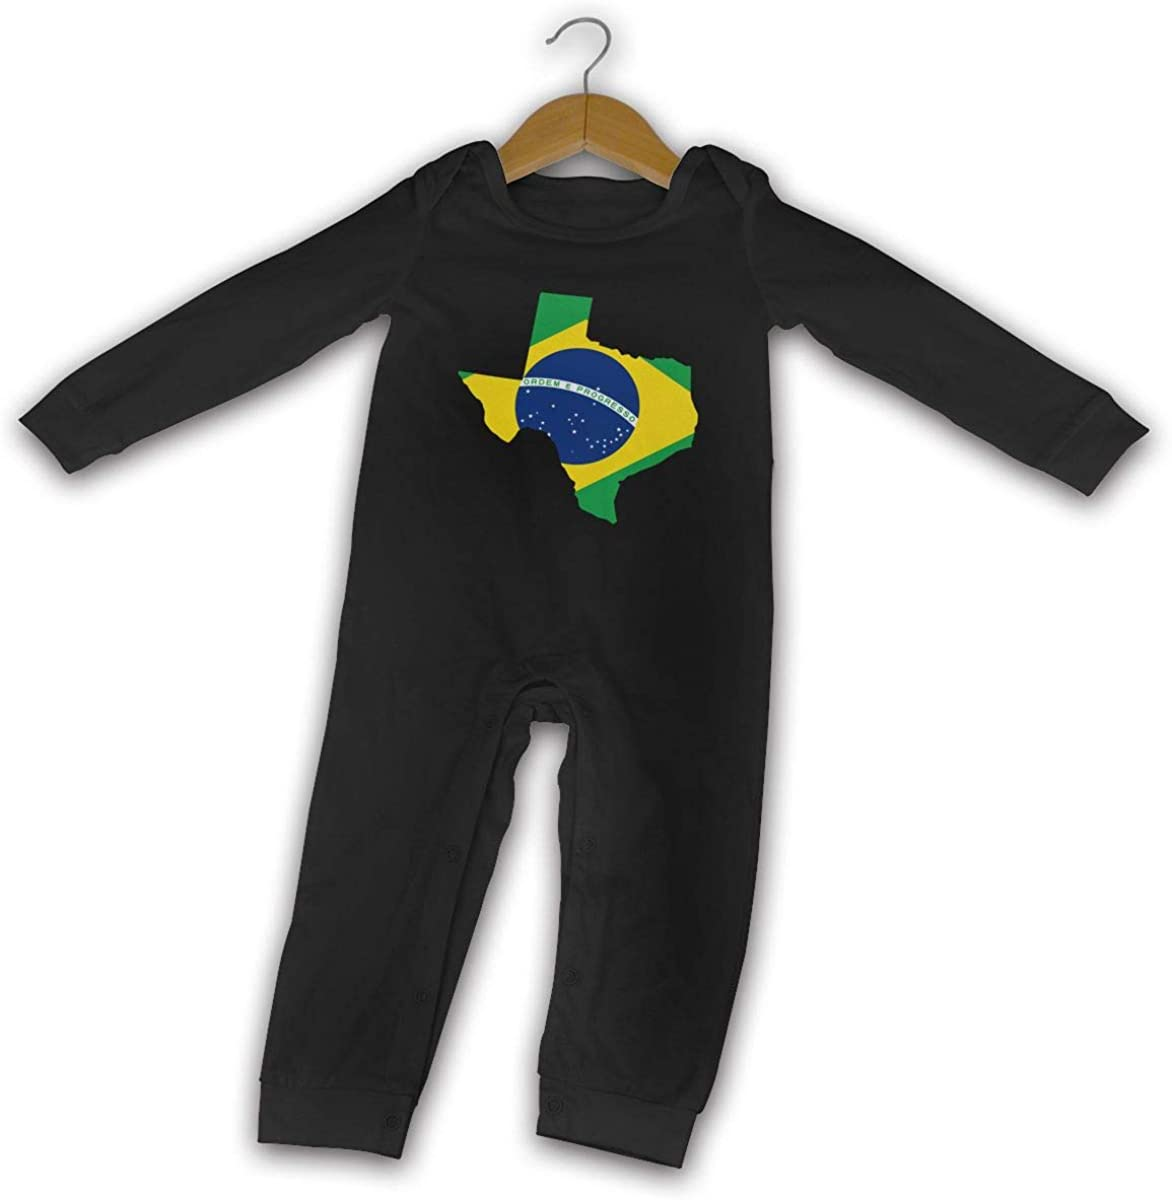 YELTY6F Brazil Flag of Texas Map Printed Newborn Baby One-Piece Suit Long Sleeve Outfits Black